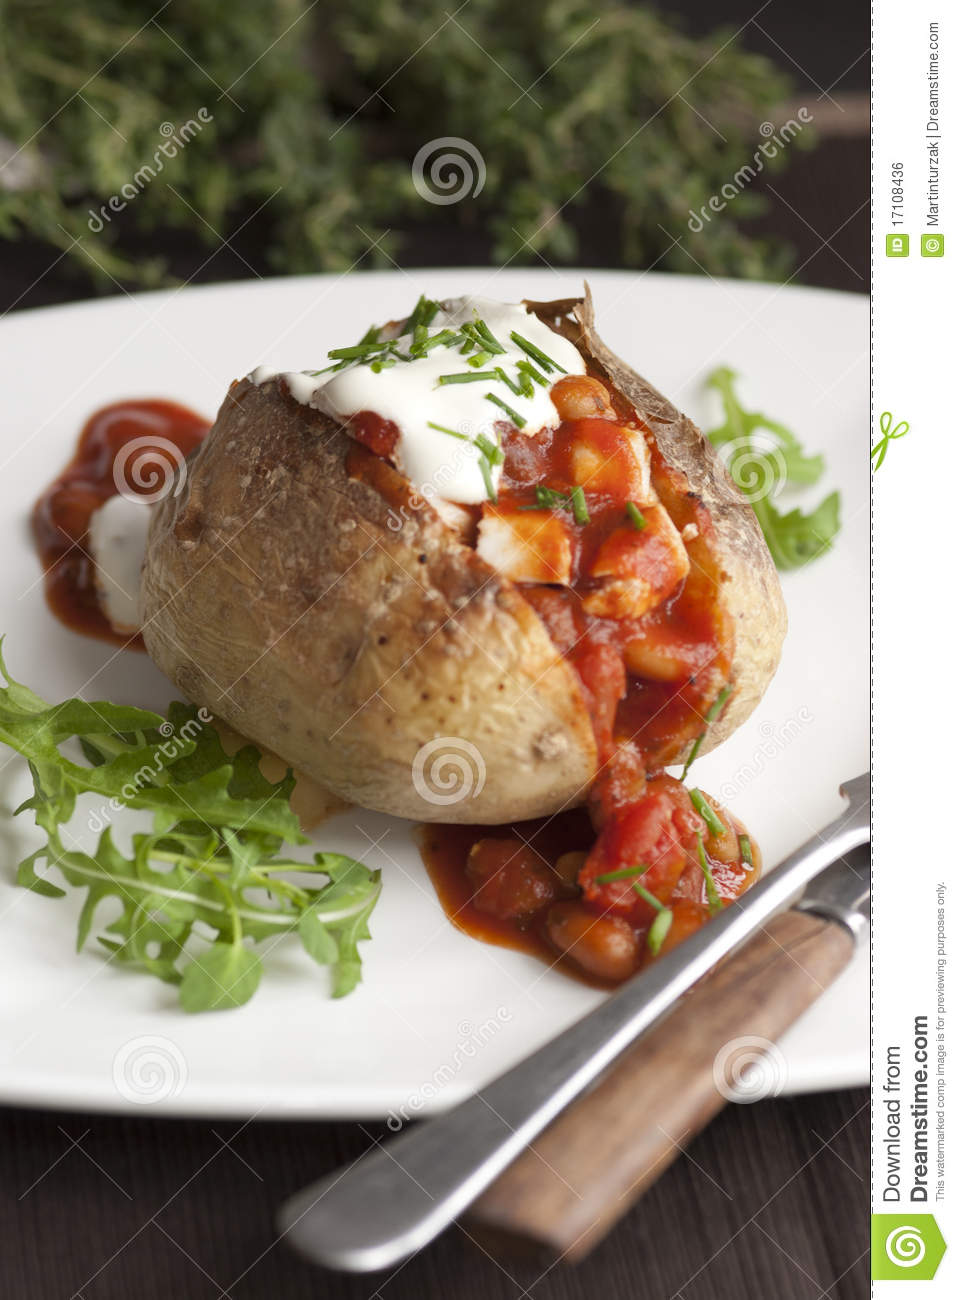 Jacket potato royalty free stock image image 17108436 for Jacket potato fillings mushroom